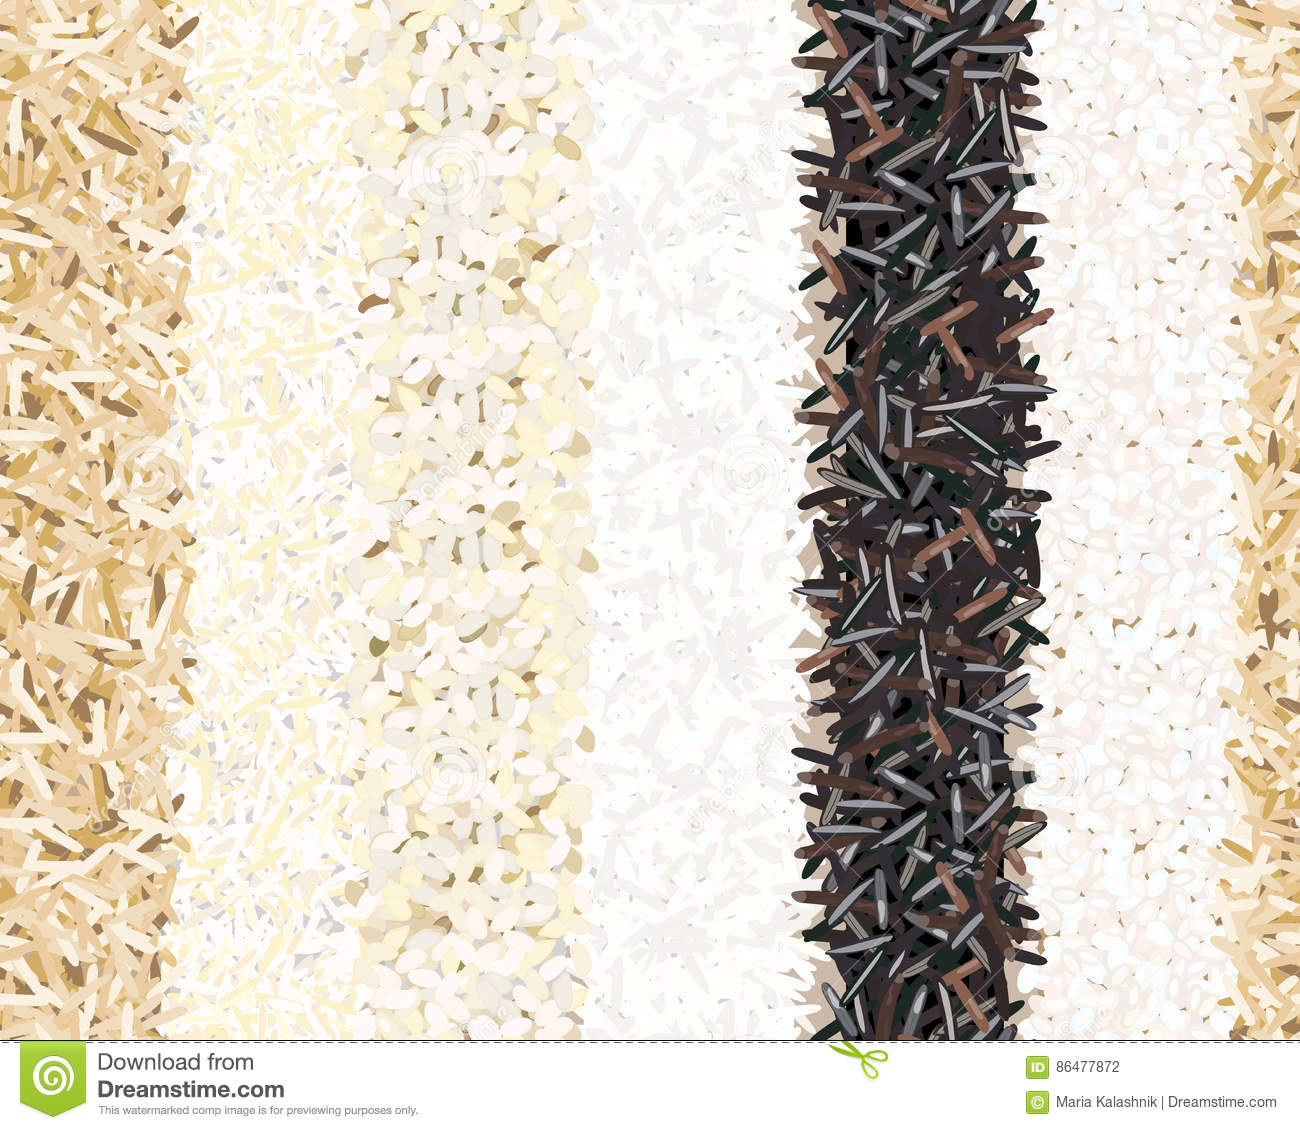 Wild and long polished rice royalty free stock image 52143952 - Six alternative uses of rice at home ...